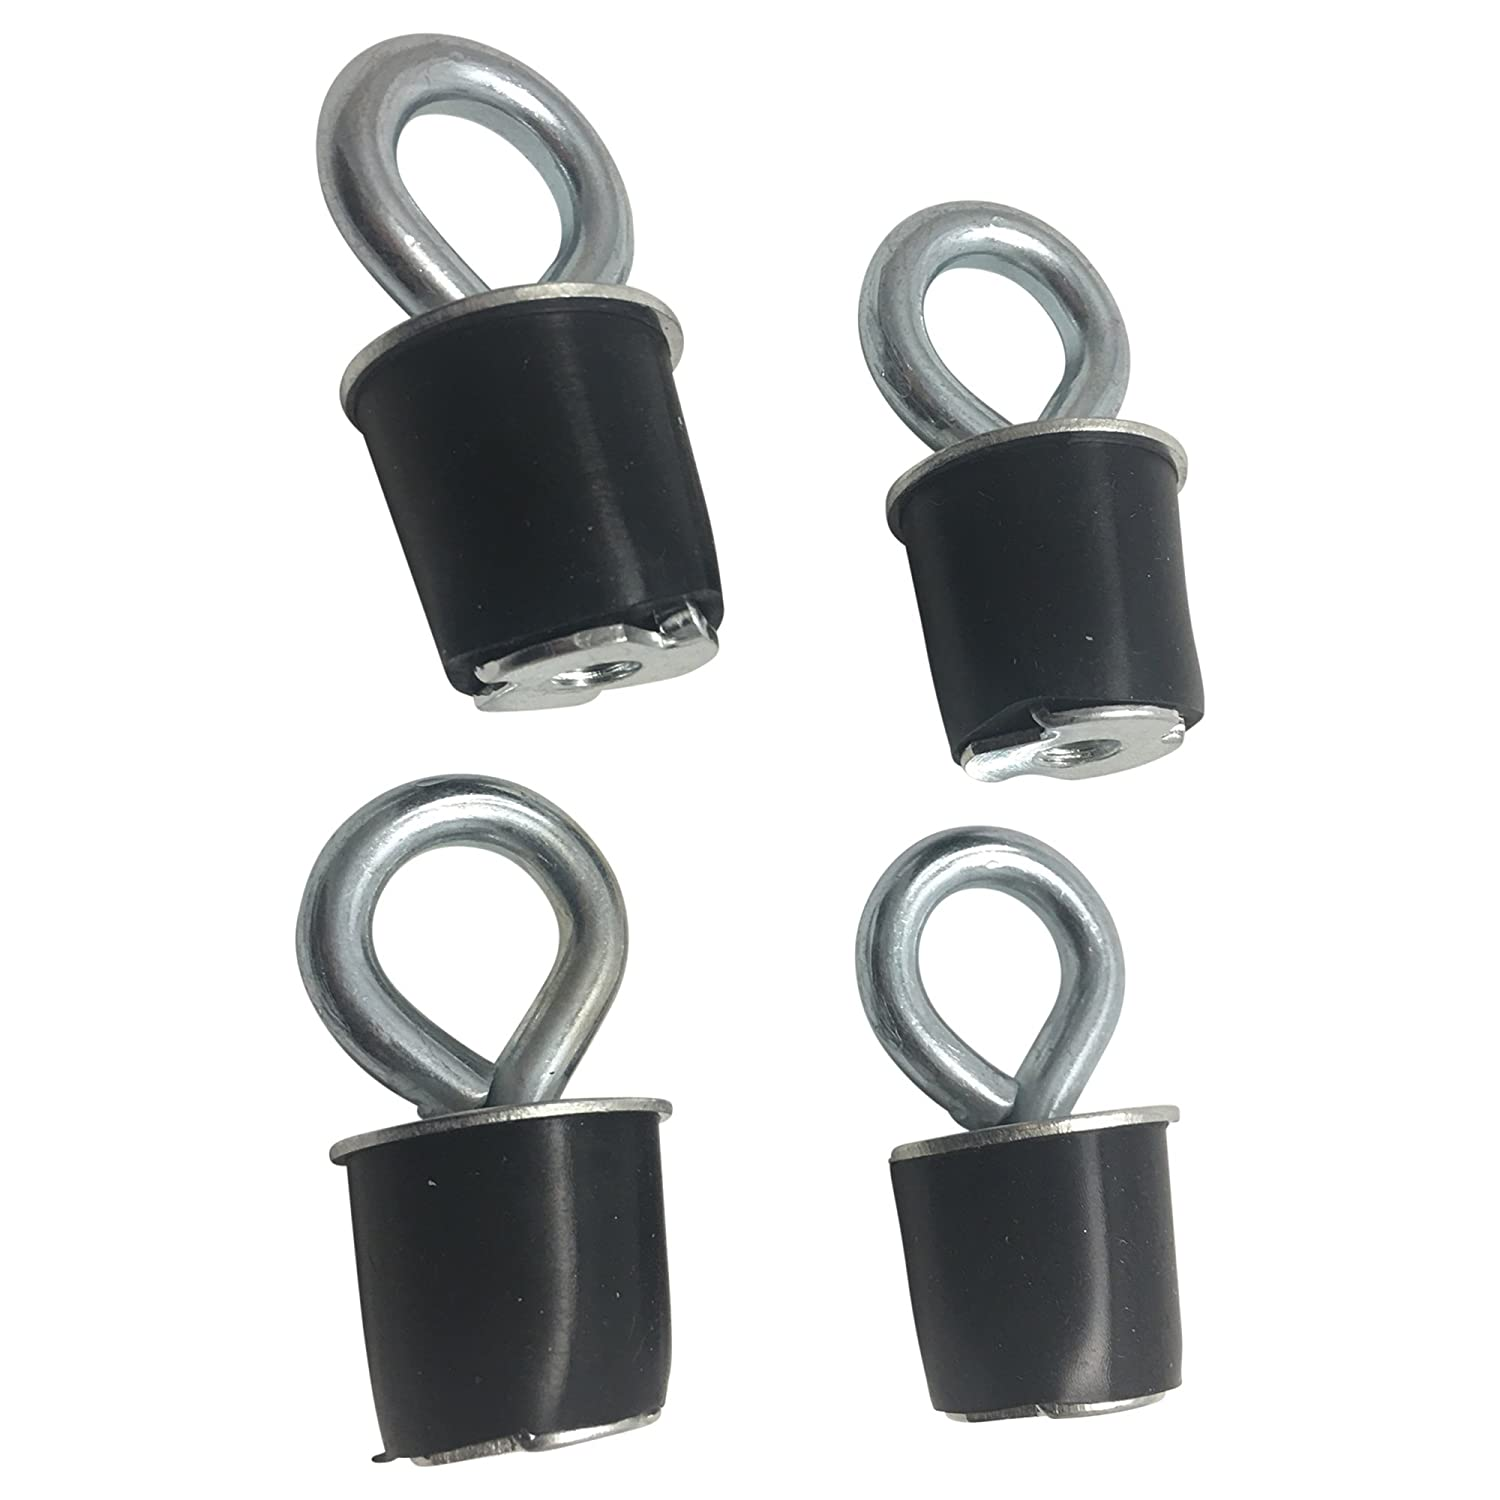 Rocket Offroad RO-Mount Black ATV and UTV Tie Down Anchor 4 Pack